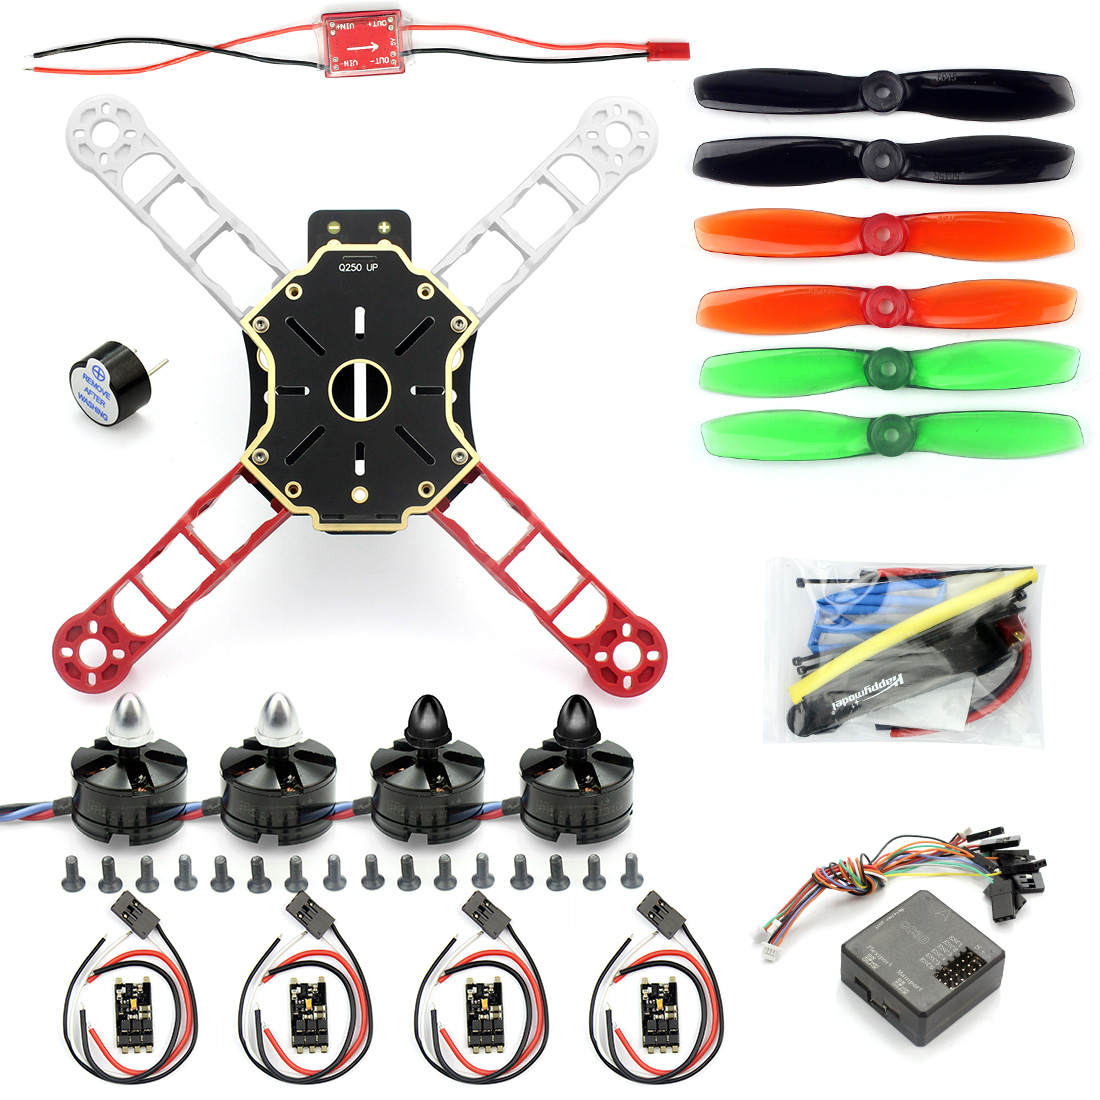 F11069 Mini 250 RC Quadcopter Combo ARF Q250 Frame CC3D Flight Controller Emax Simon 12A ESC Brushless Motor MT2204 CW CCW  FS rc plane 210 mm carbon fiber mini quadcopter frame f3 flight controller 2206 1900kv motor 4050 prop rc